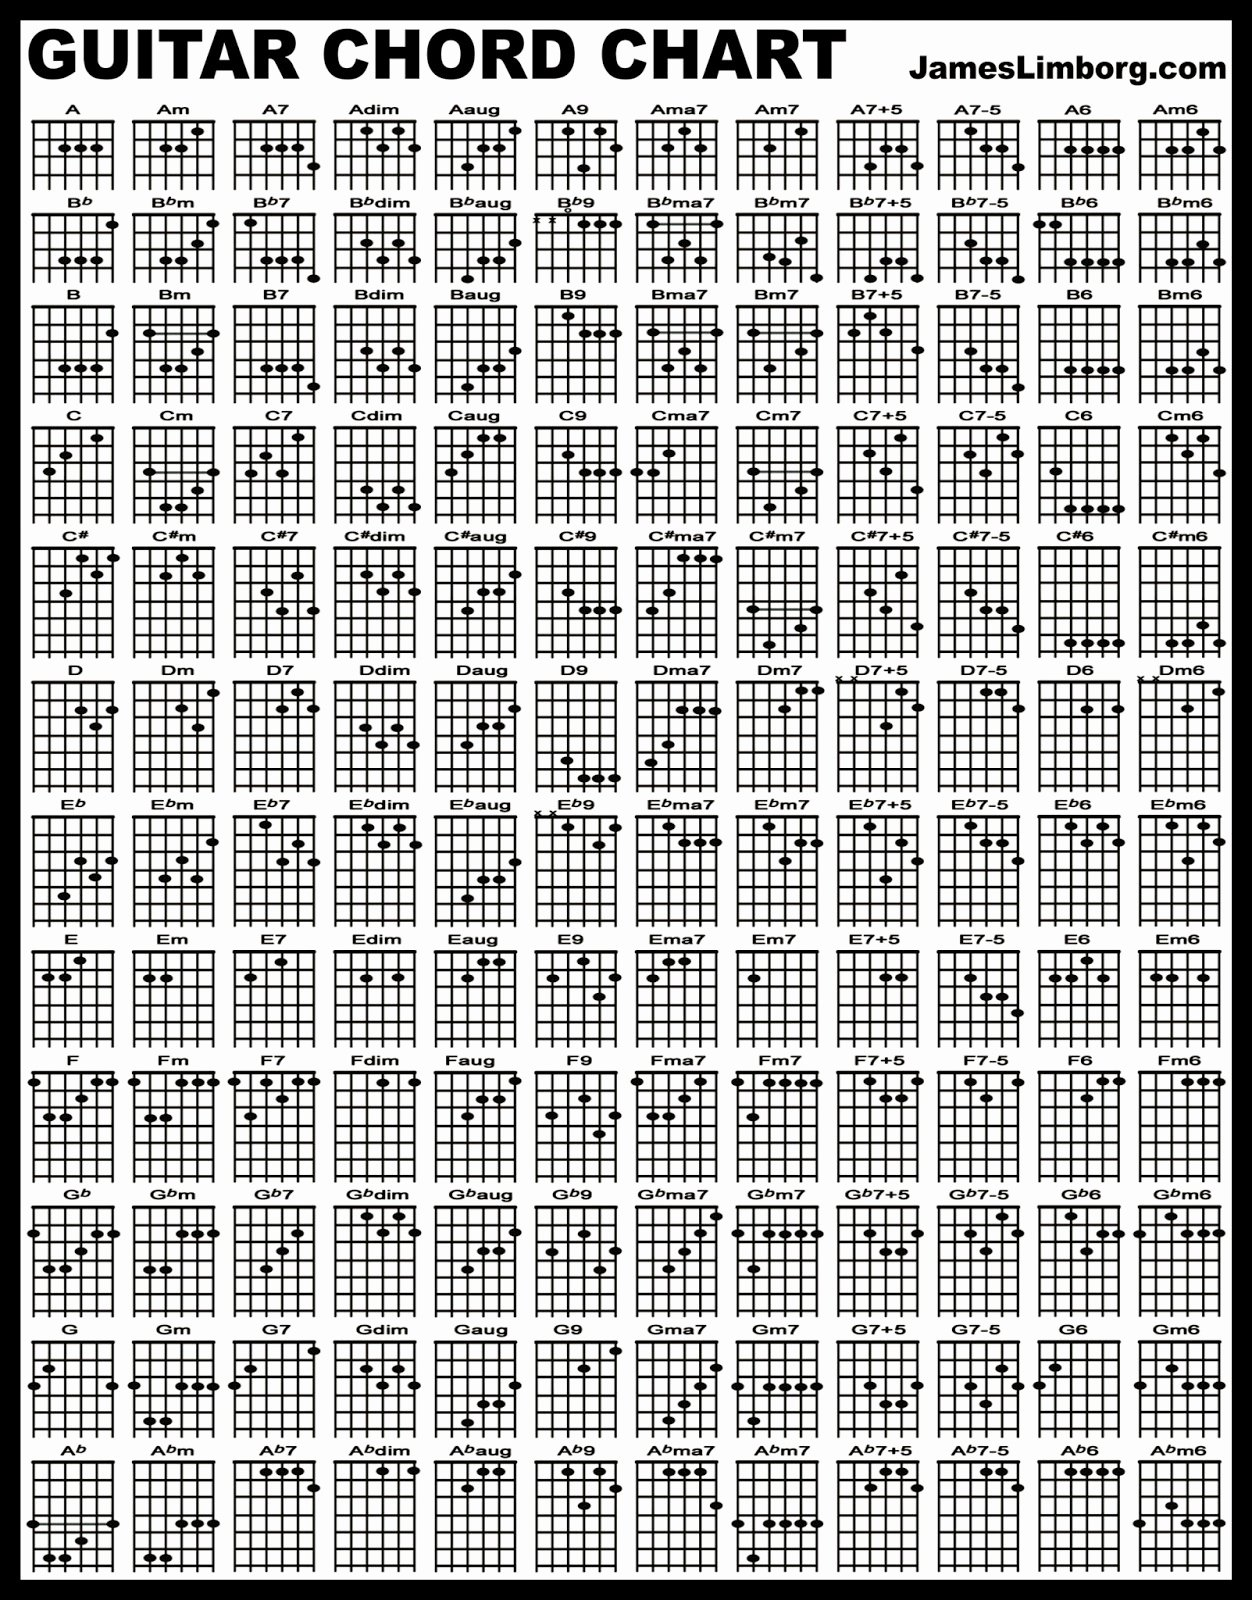 Chord Charts Acoustic Guitar Luxury About Guitar